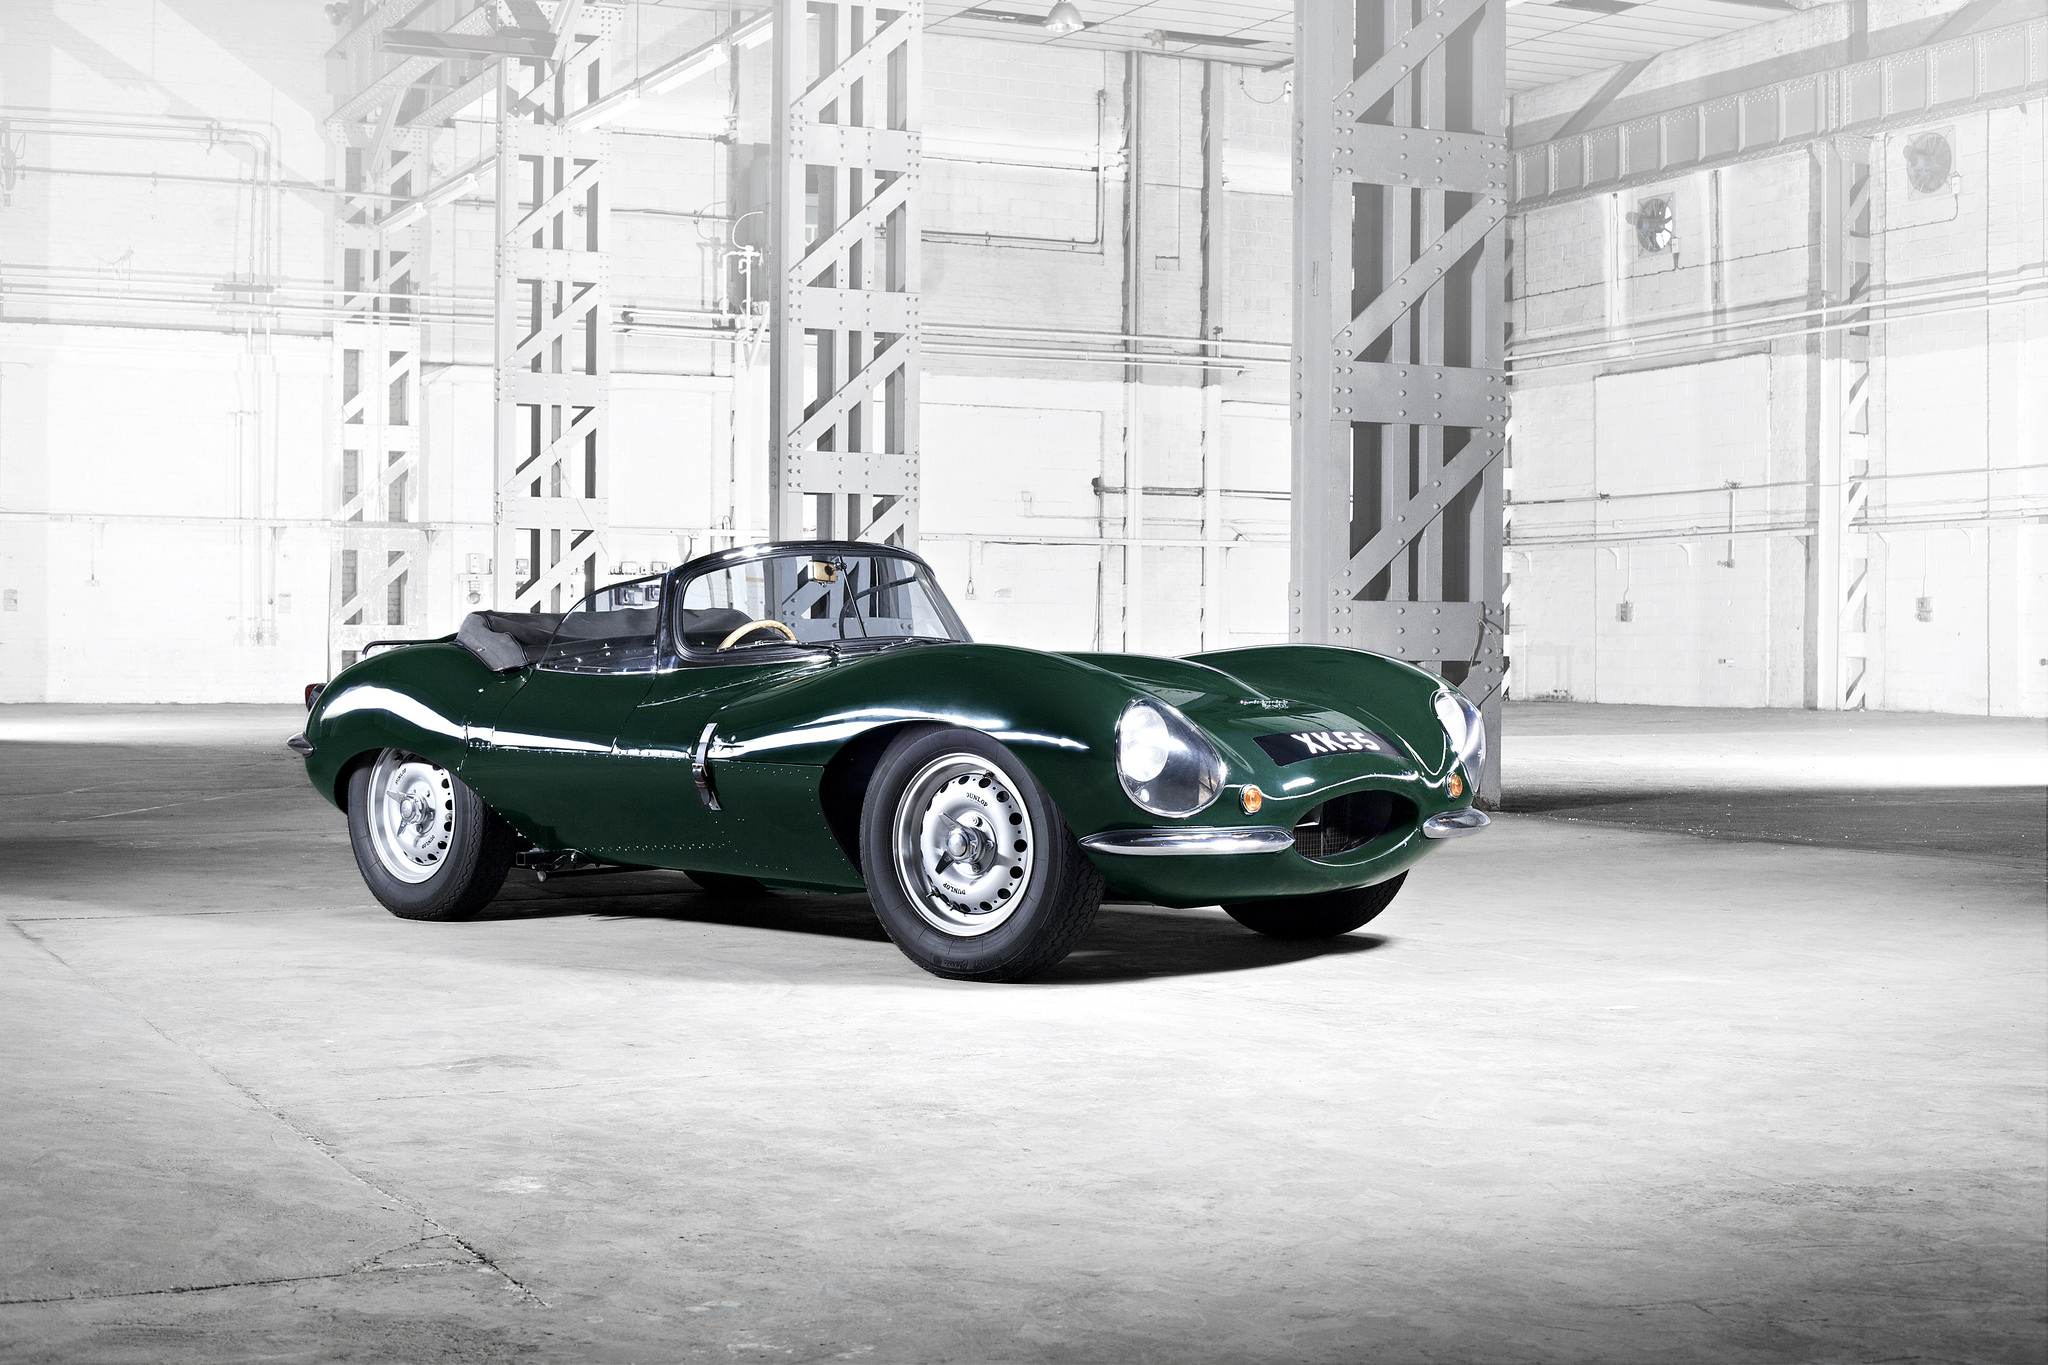 1957 Jaguar XKSS is among Best of the Dream Luxury Cars for Successful Entrepreneurs